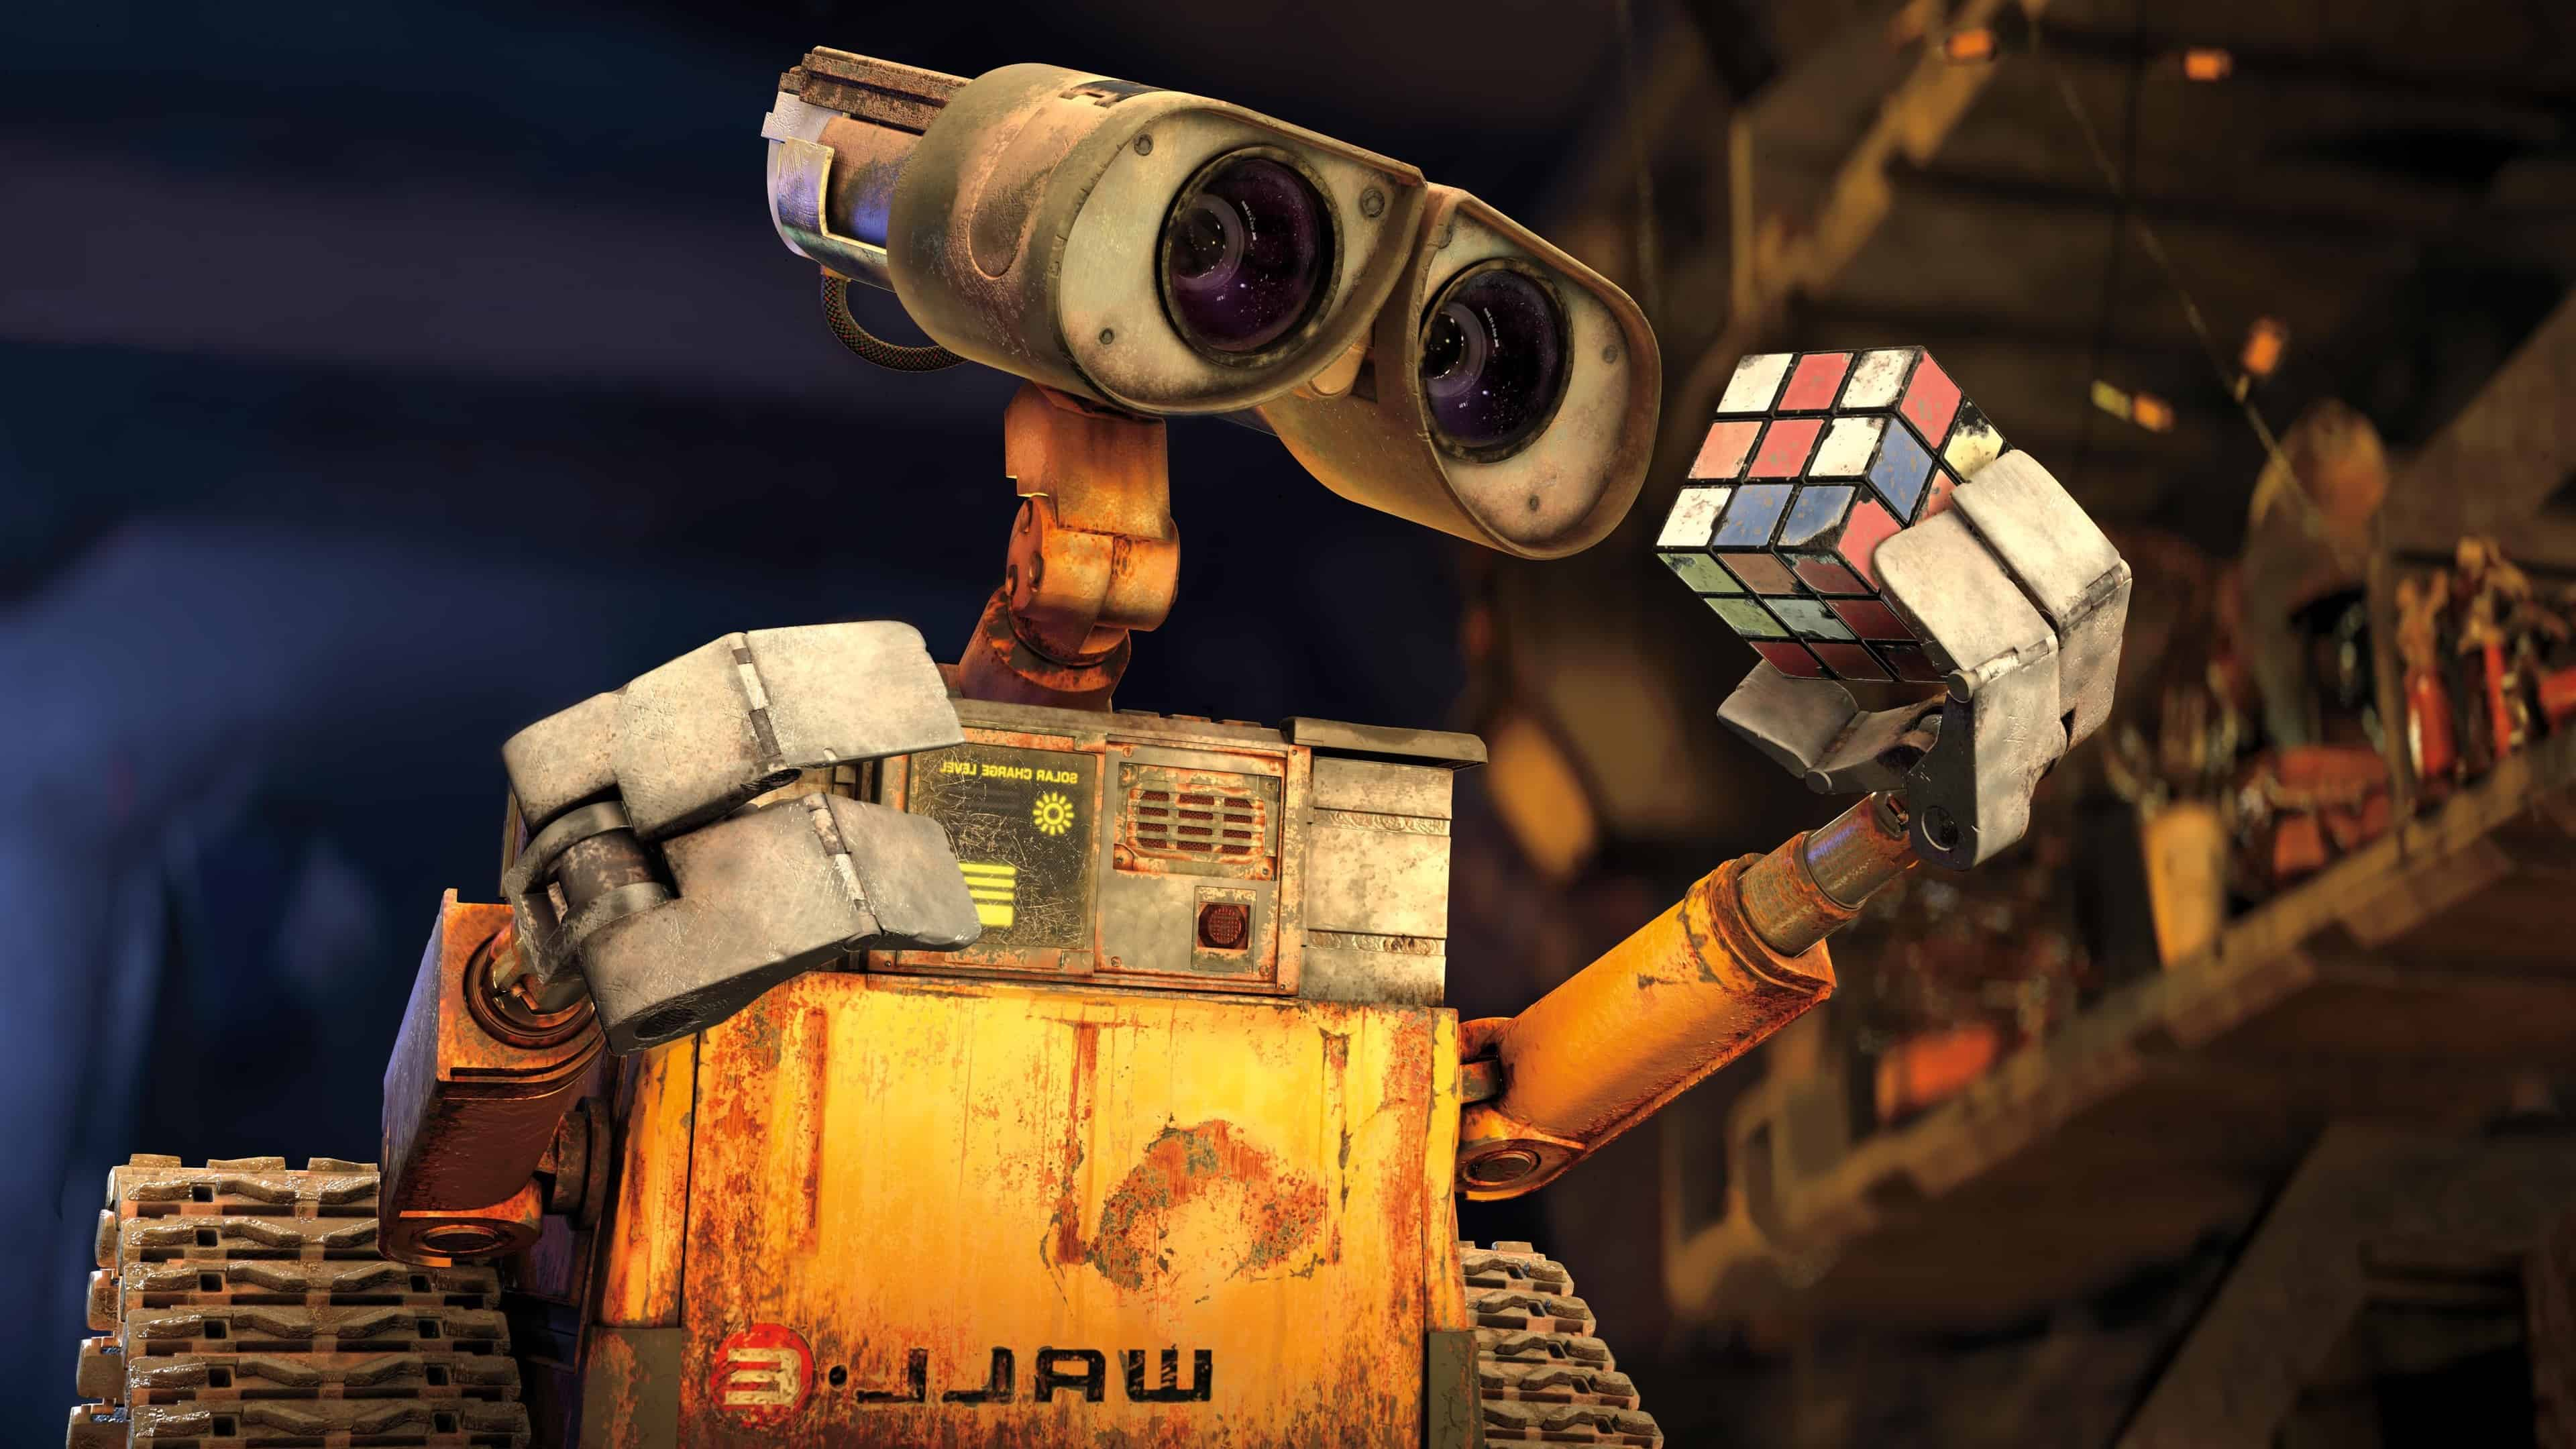 wall-e uhd 4k wallpaper